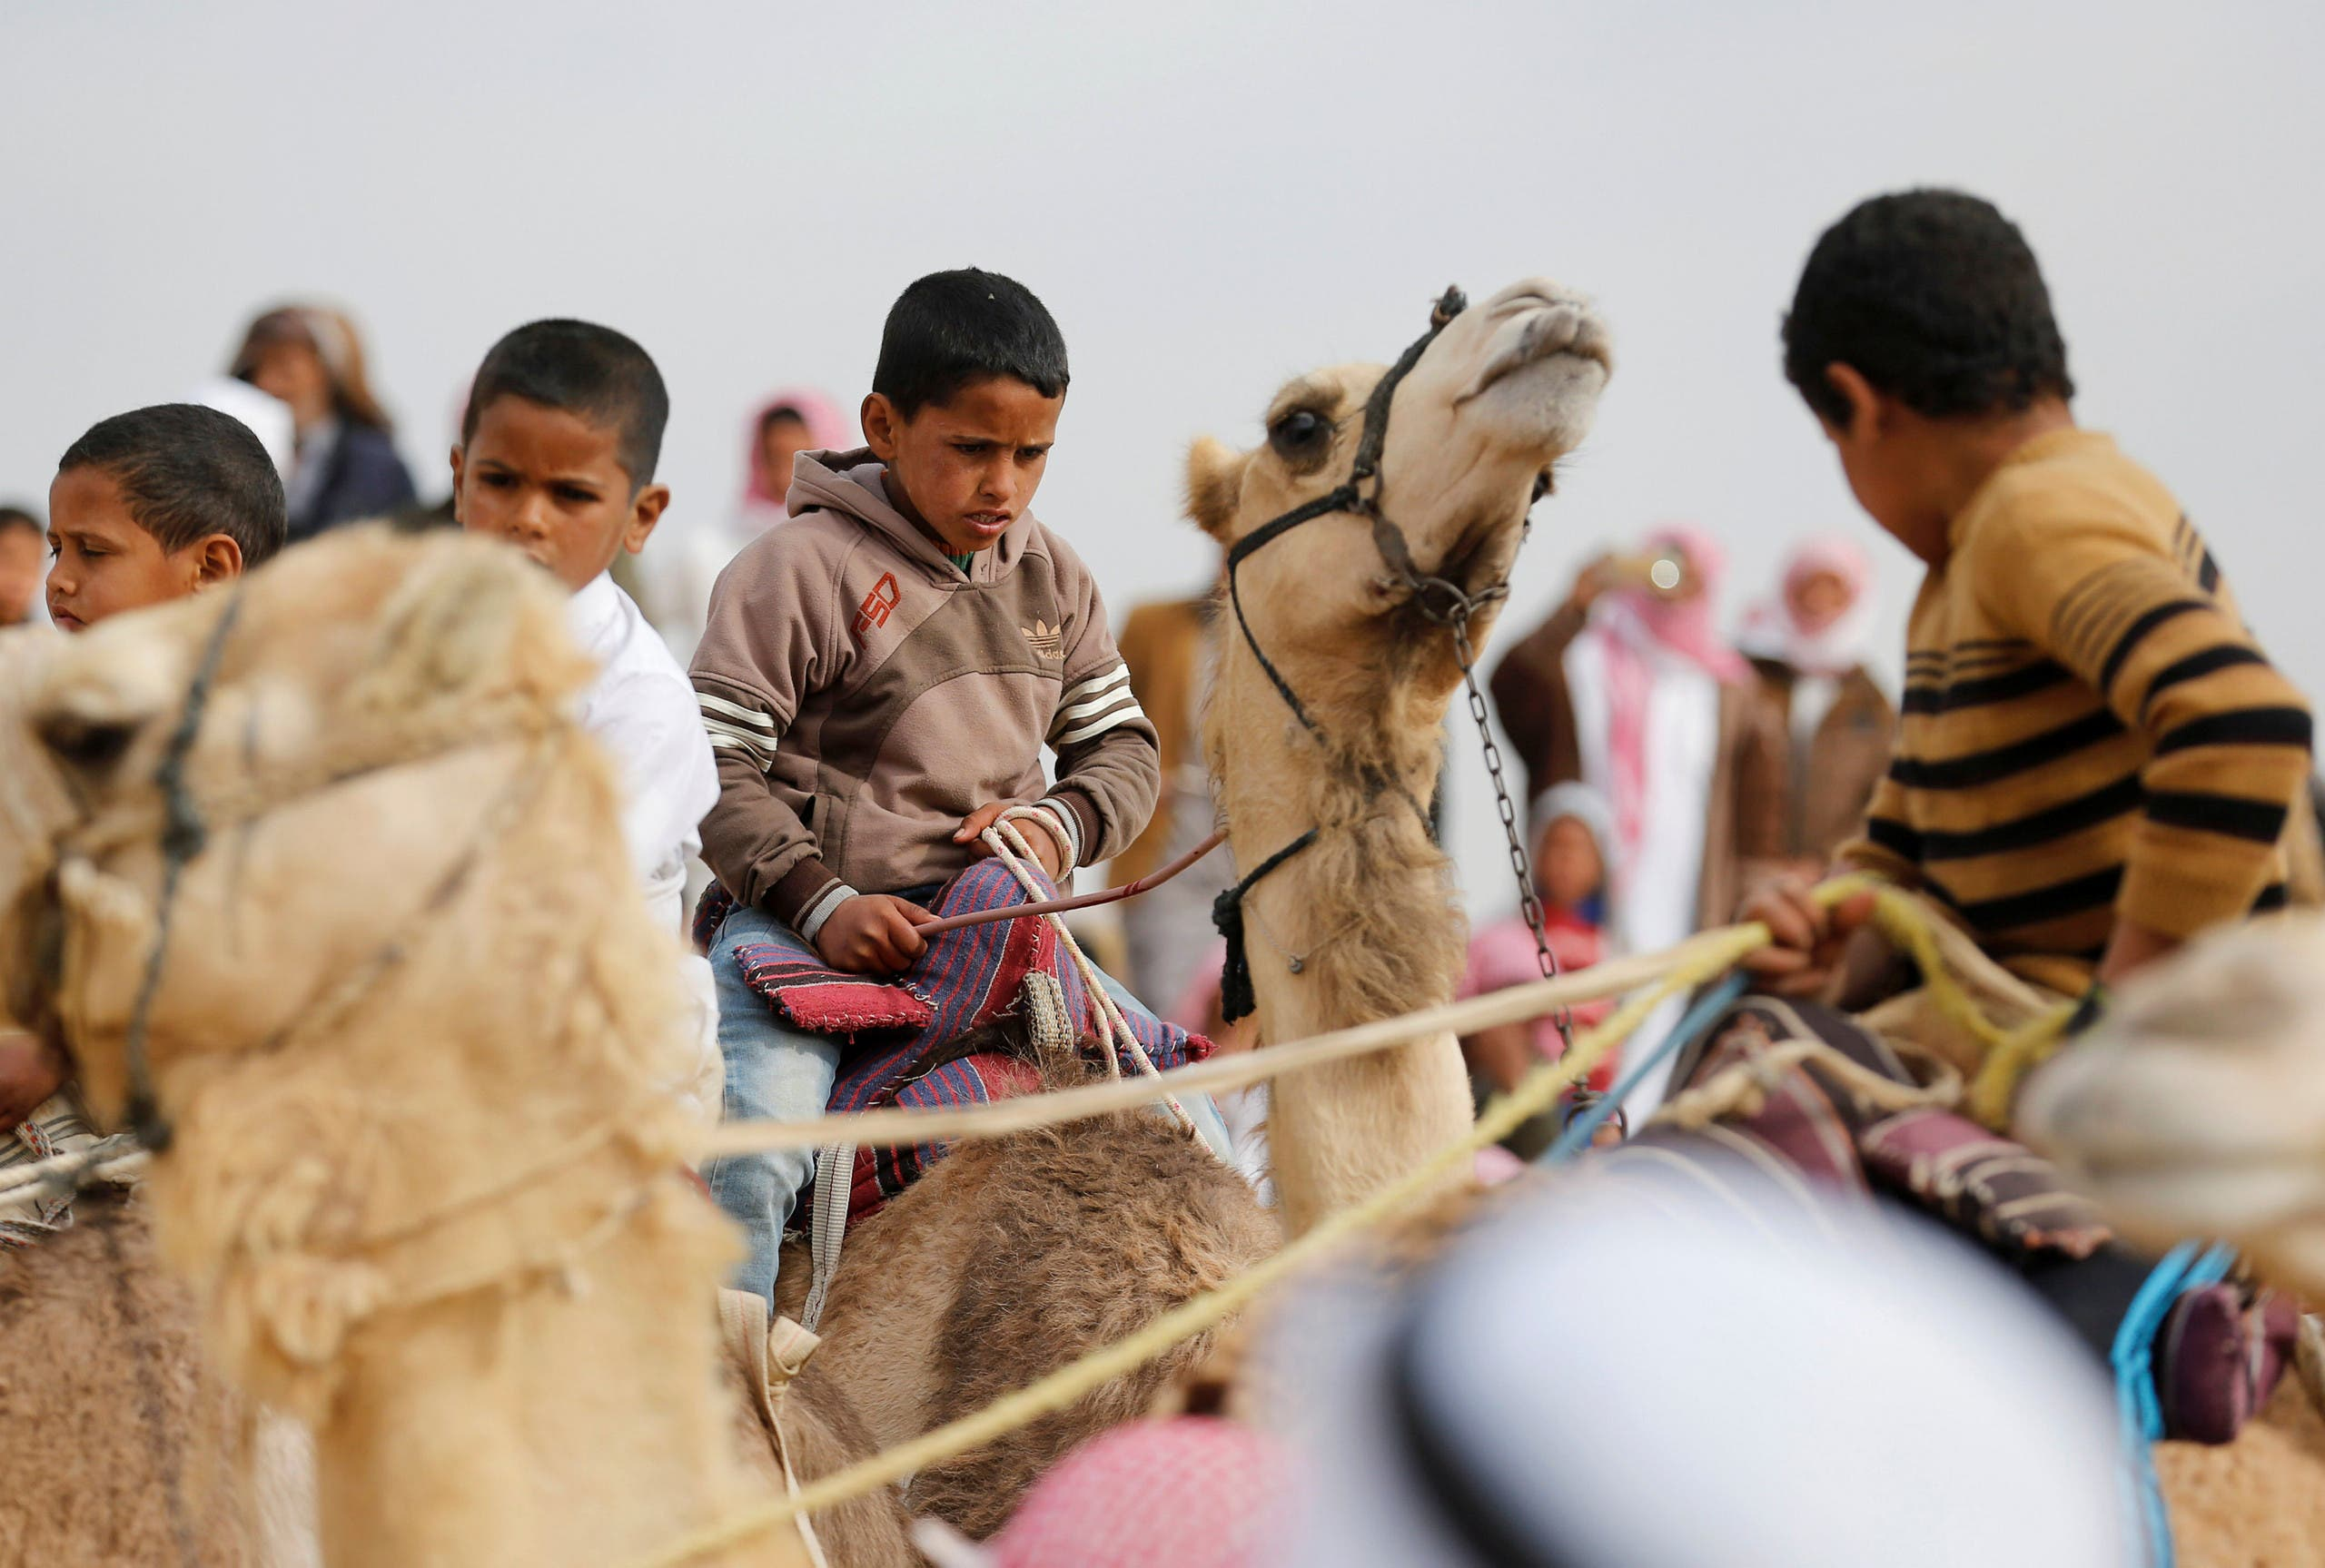 Jockeys, most of whom are children, ride their mounts as they prepare to compete in the International Camel Racing festival at the Sarabium desert in Ismailia, Egypt, March 21, 2017. Picture taken March 21, 2017. reuters